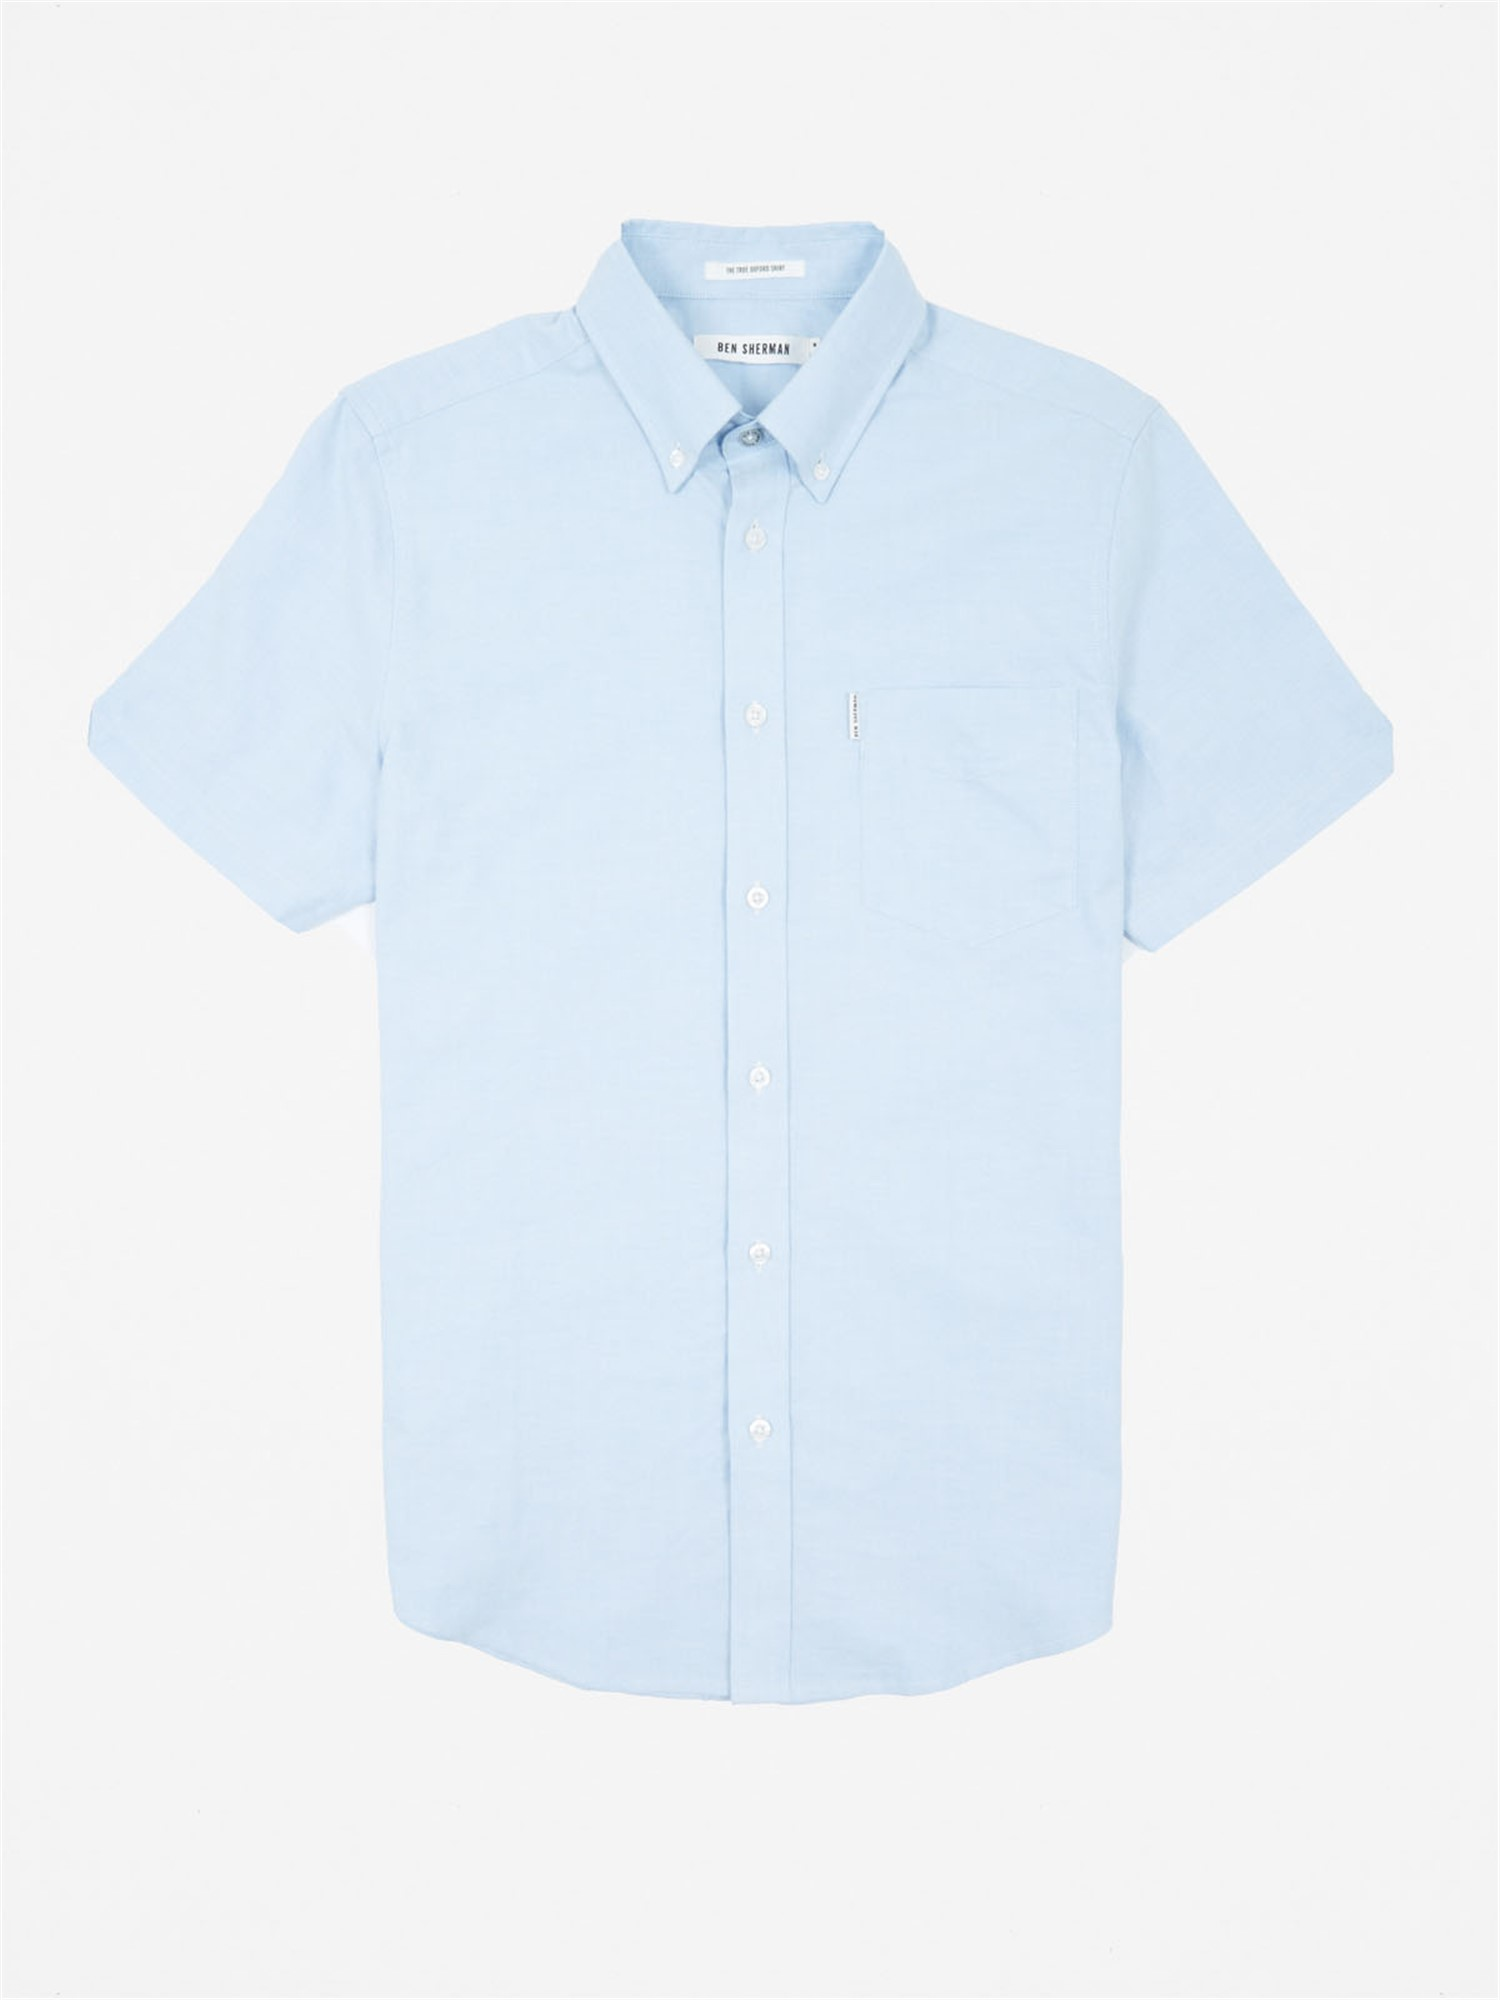 Ben Sherman Dusk Blue Classic Oxford Short Sleeve Shirt Regular Fit (Mod Fit)